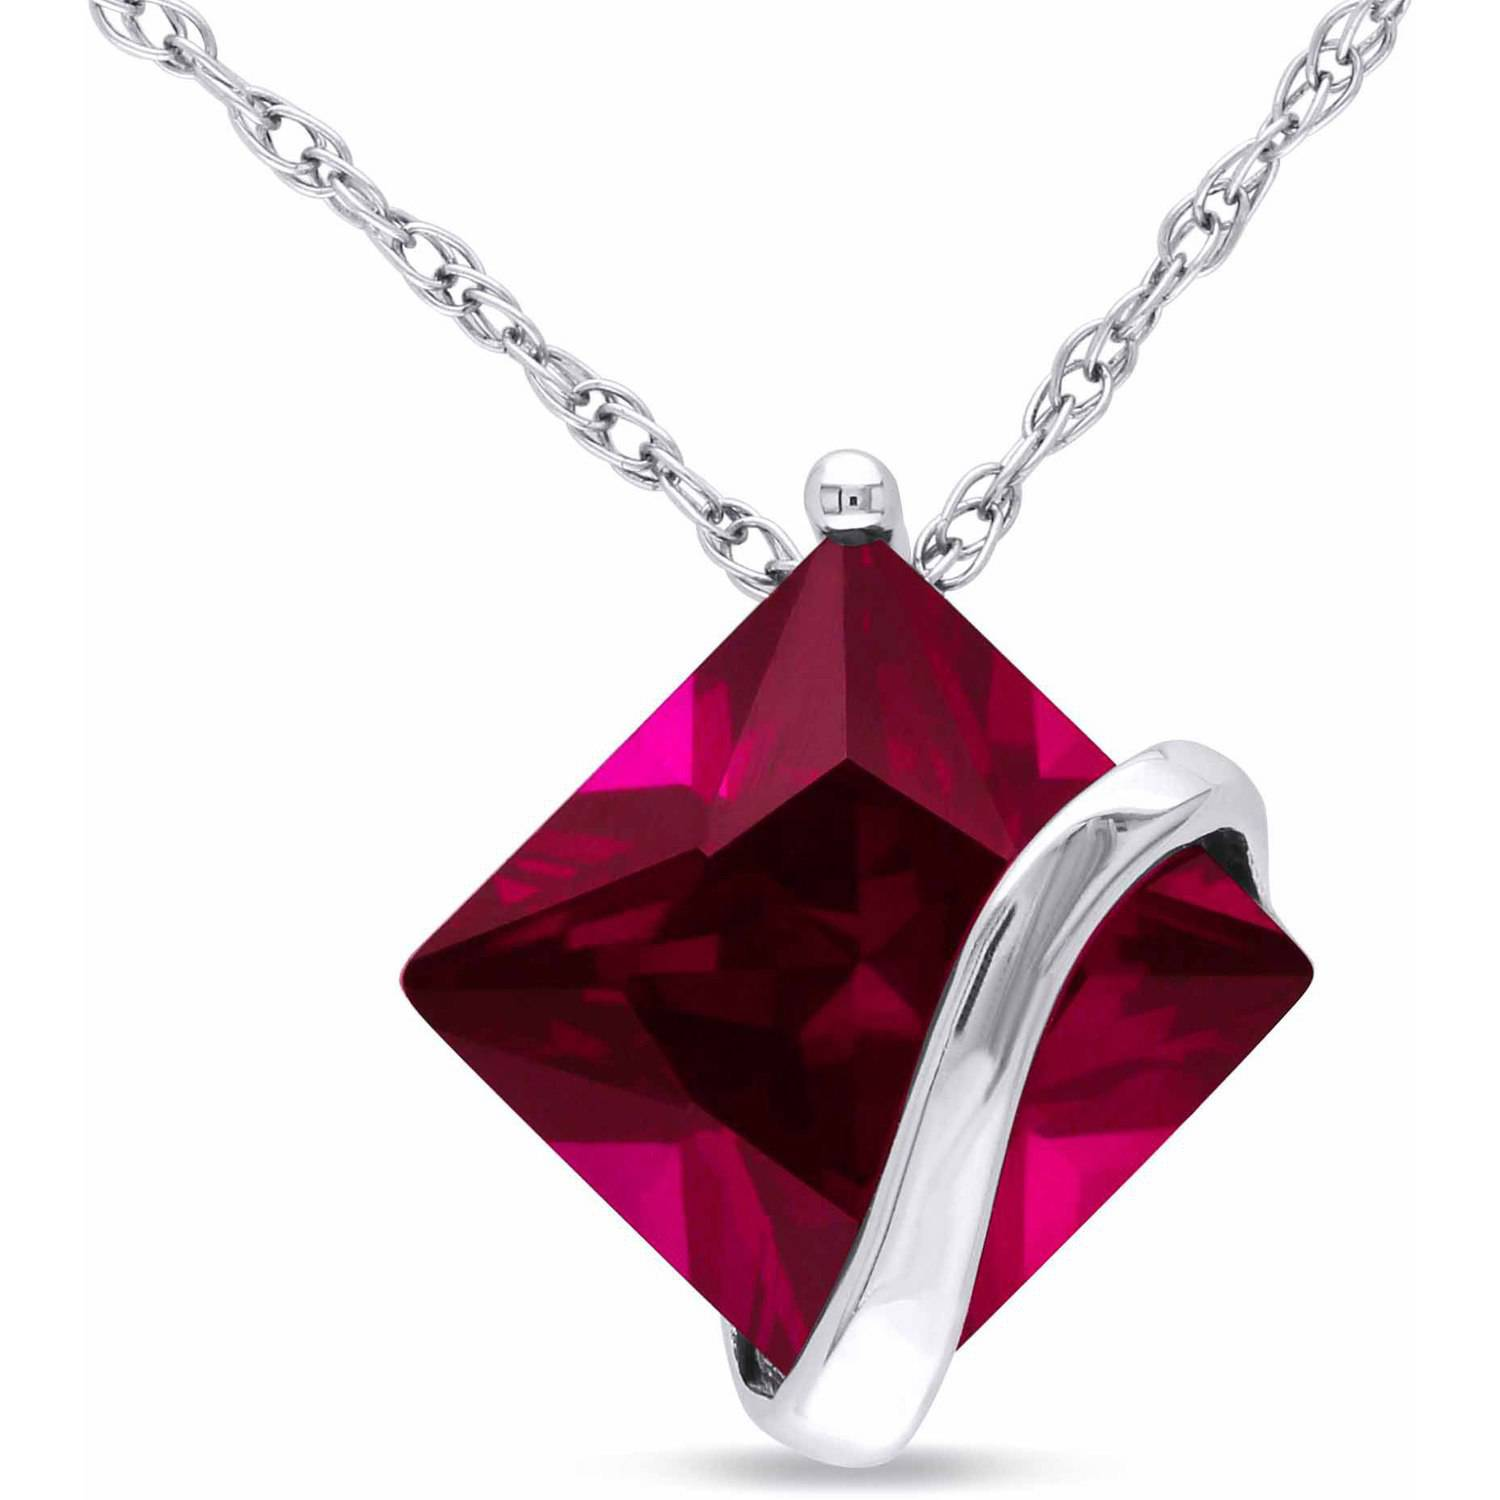 Tangelo 3.06 Carat T.G.W. Created Ruby 10kt White Gold Diamond-Shaped Solitaire Pendant, 17""